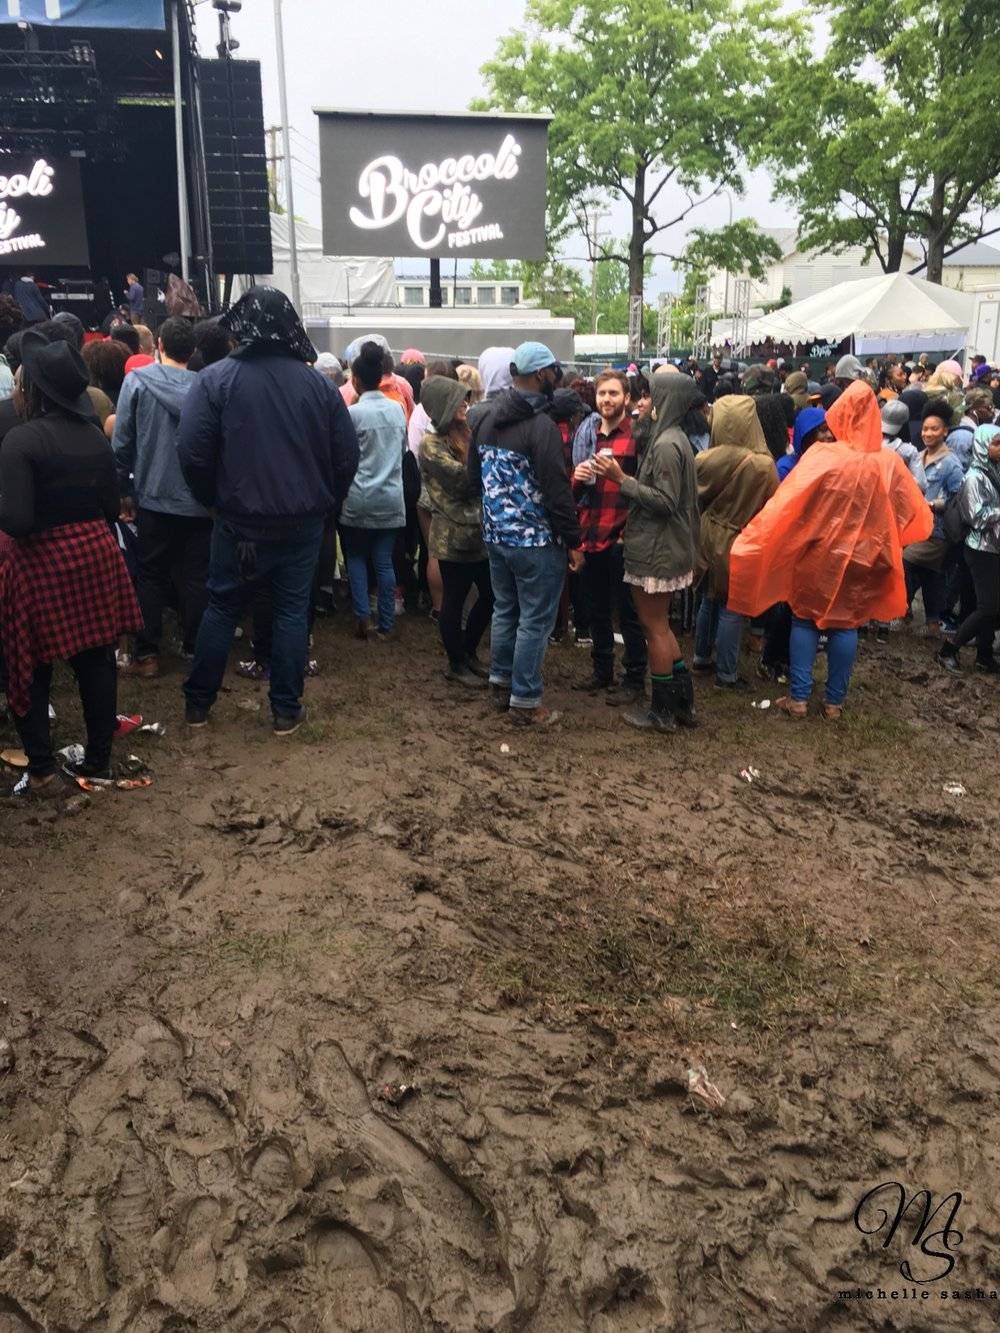 Mud pits didn't stop the music at Broccoli City V